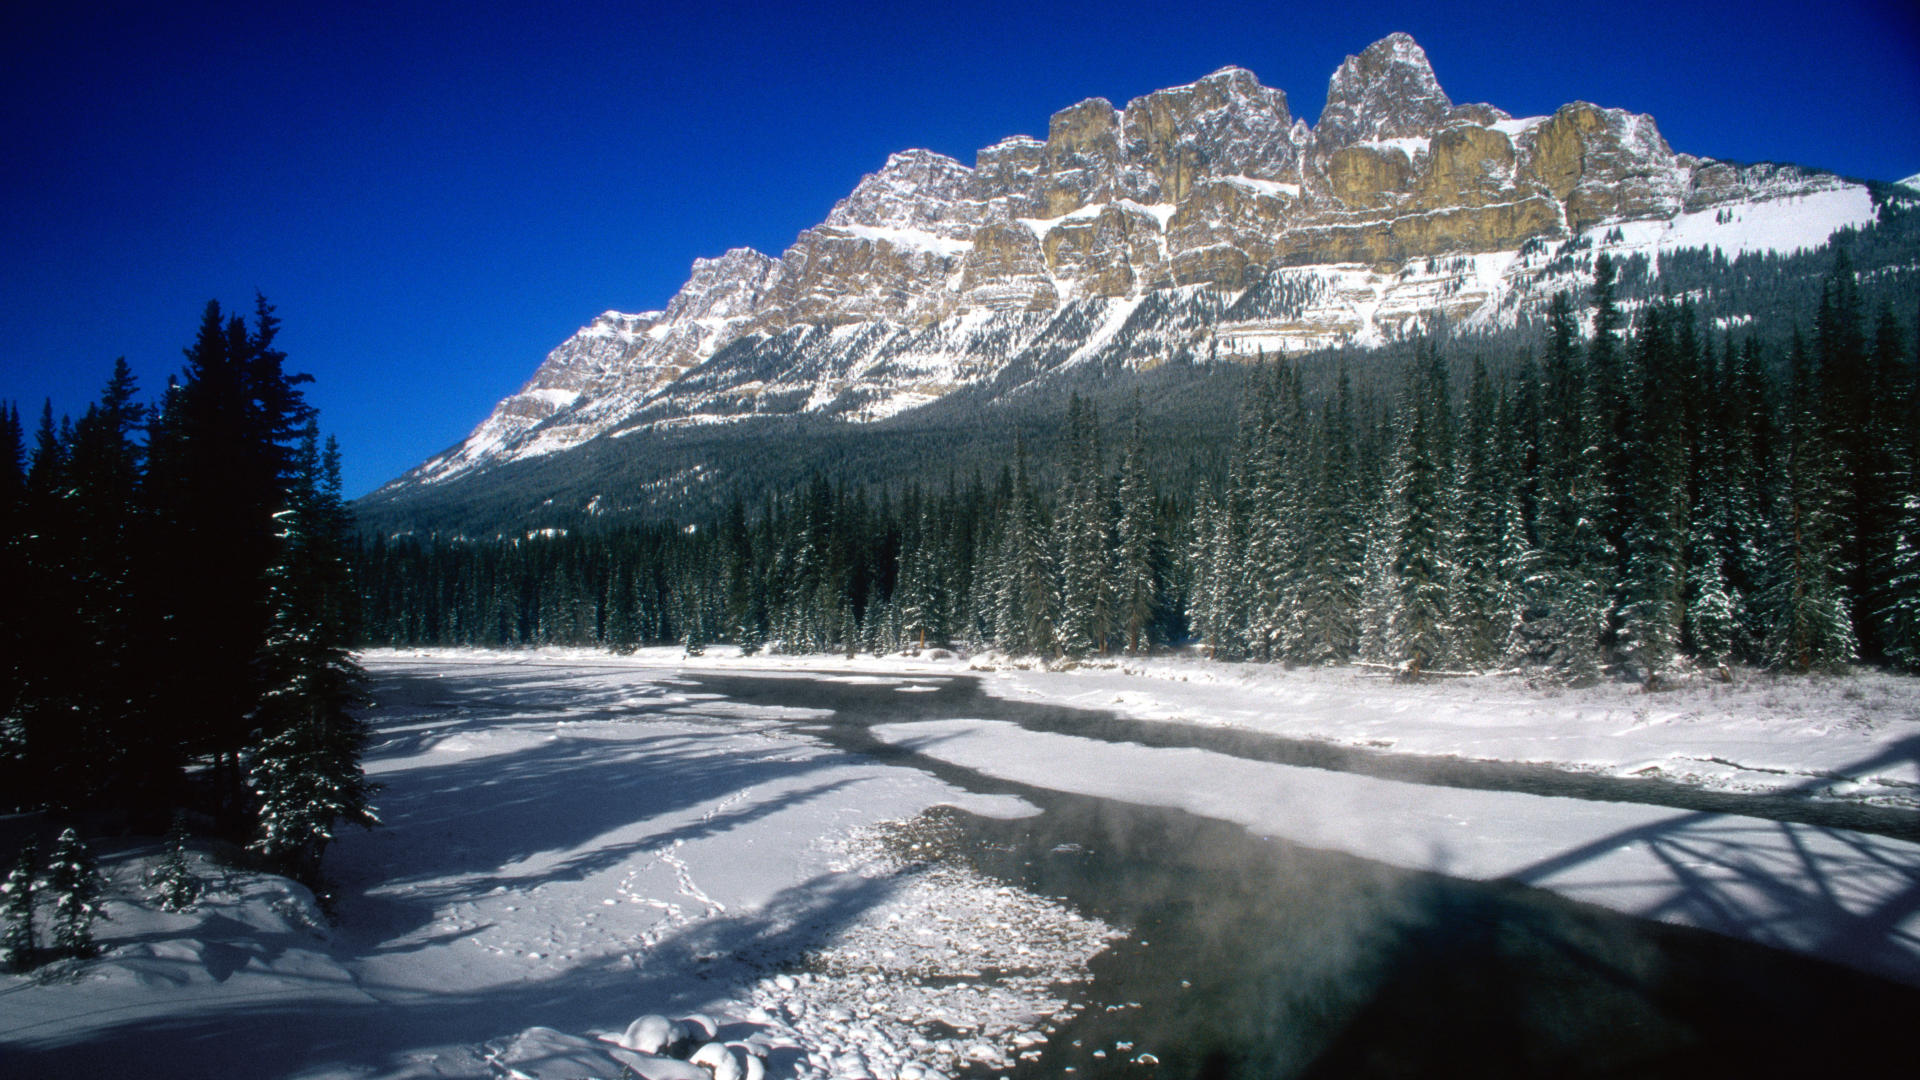 Backgrounds Alberta Canada Background Park National Castle Mountain 1920x1080